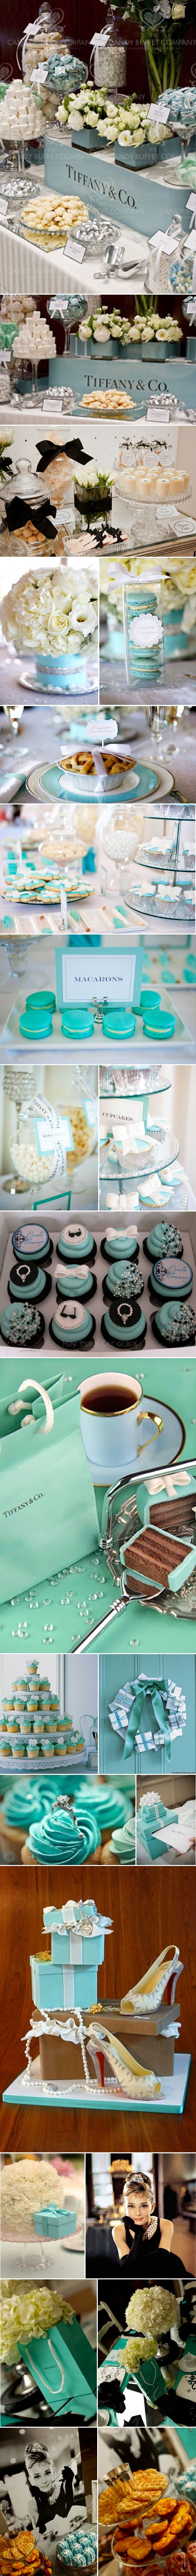 Breakfast at Tiffany themed Wedding Shower - id love this for a shower!!